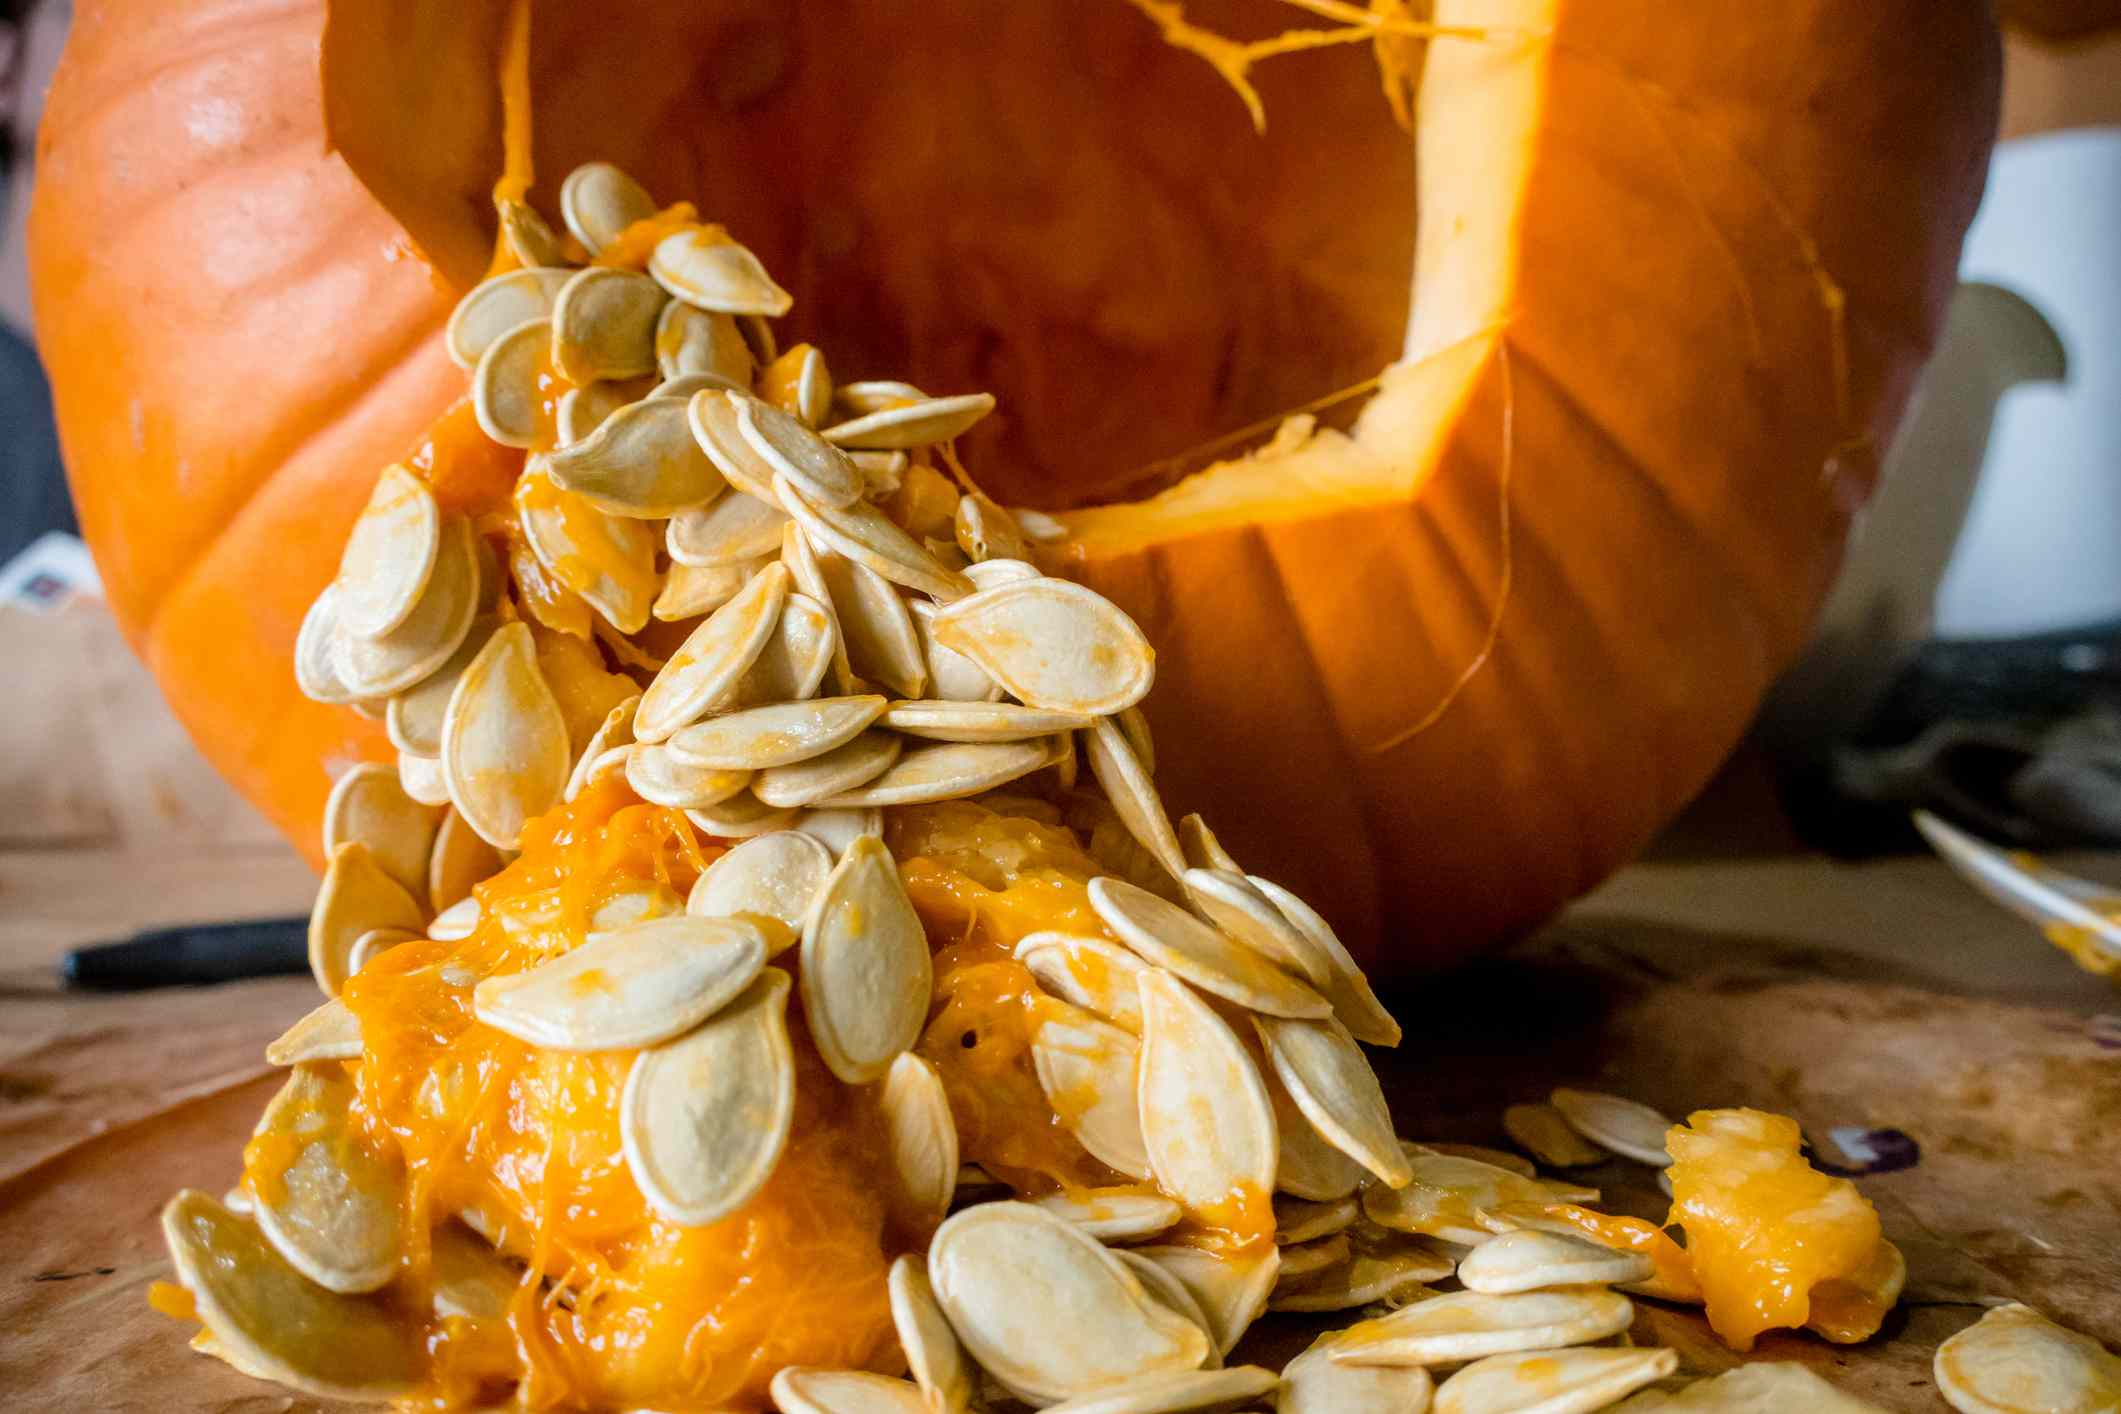 Pumpkin with seeds spilling out.